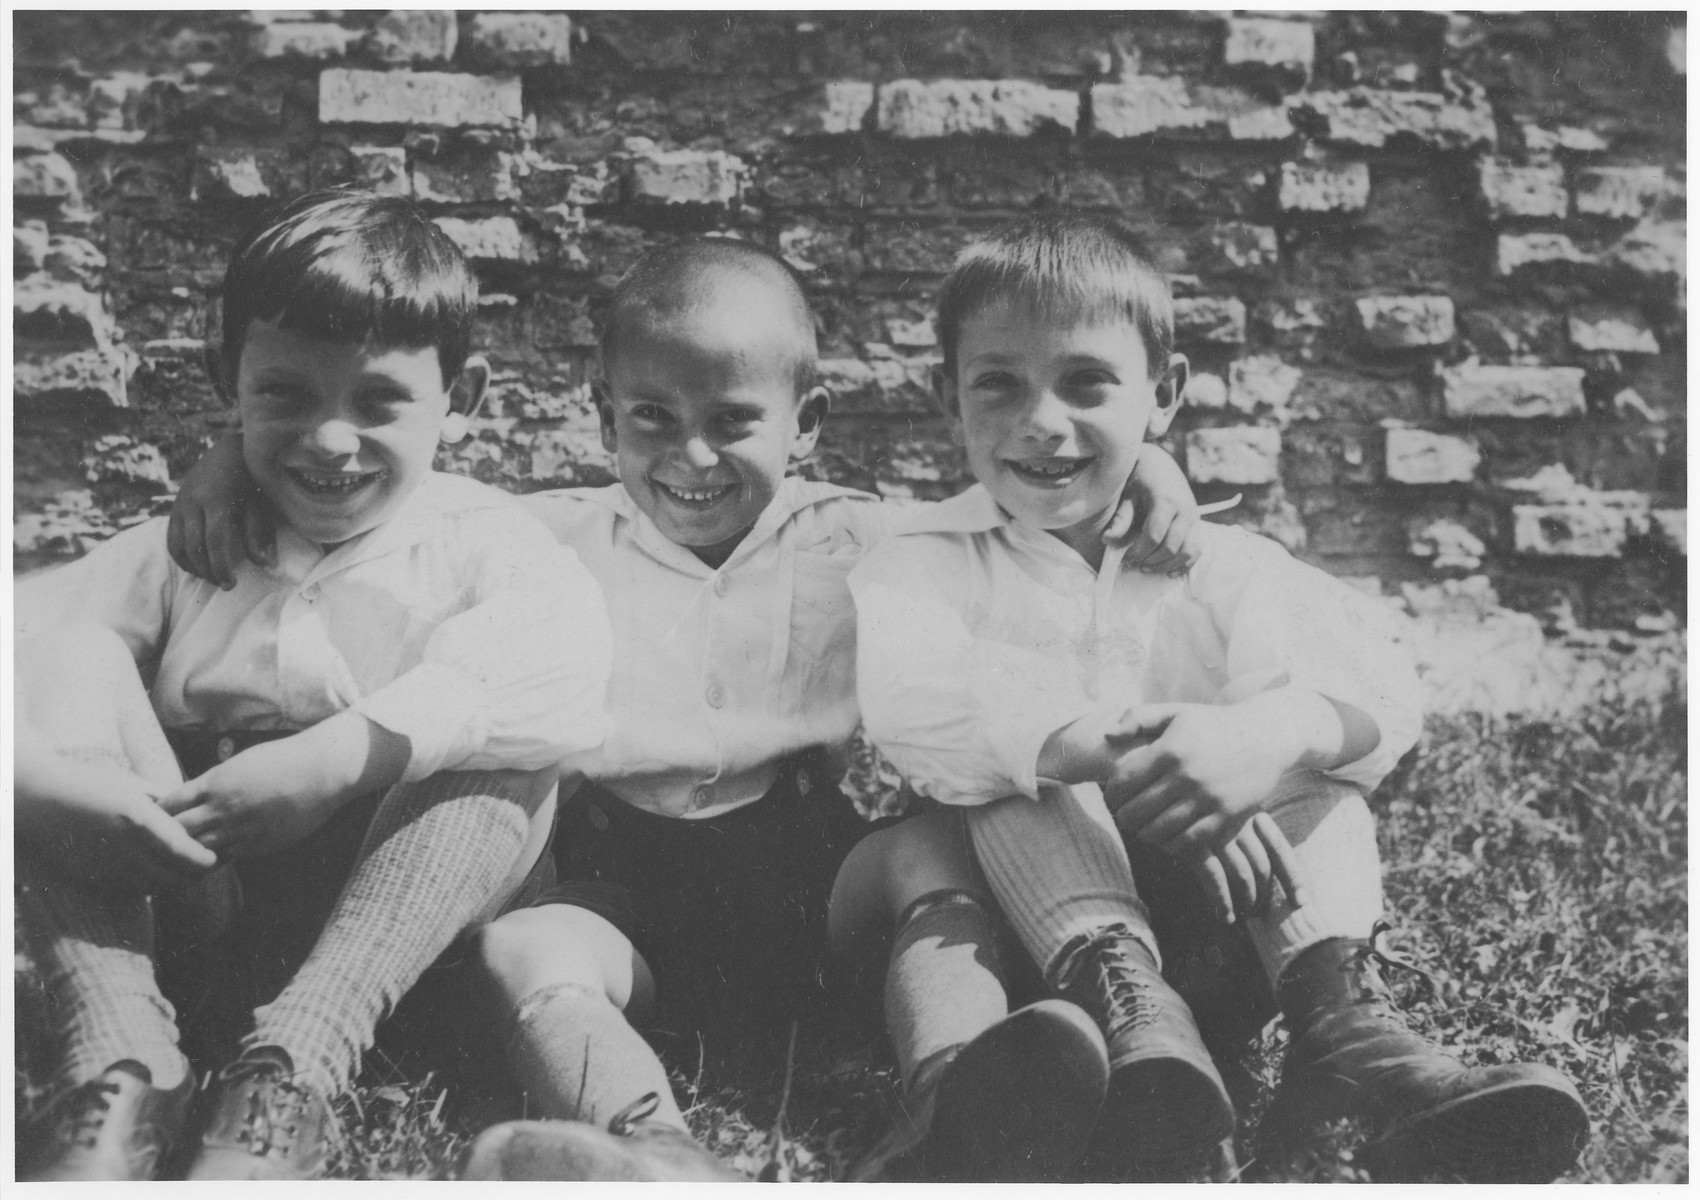 Three young Jewish boys pose in front of a brick wall.    Pictured from left to right are Fritz Neuberger, Werner Neuberger and their cousin, Max Mayer.